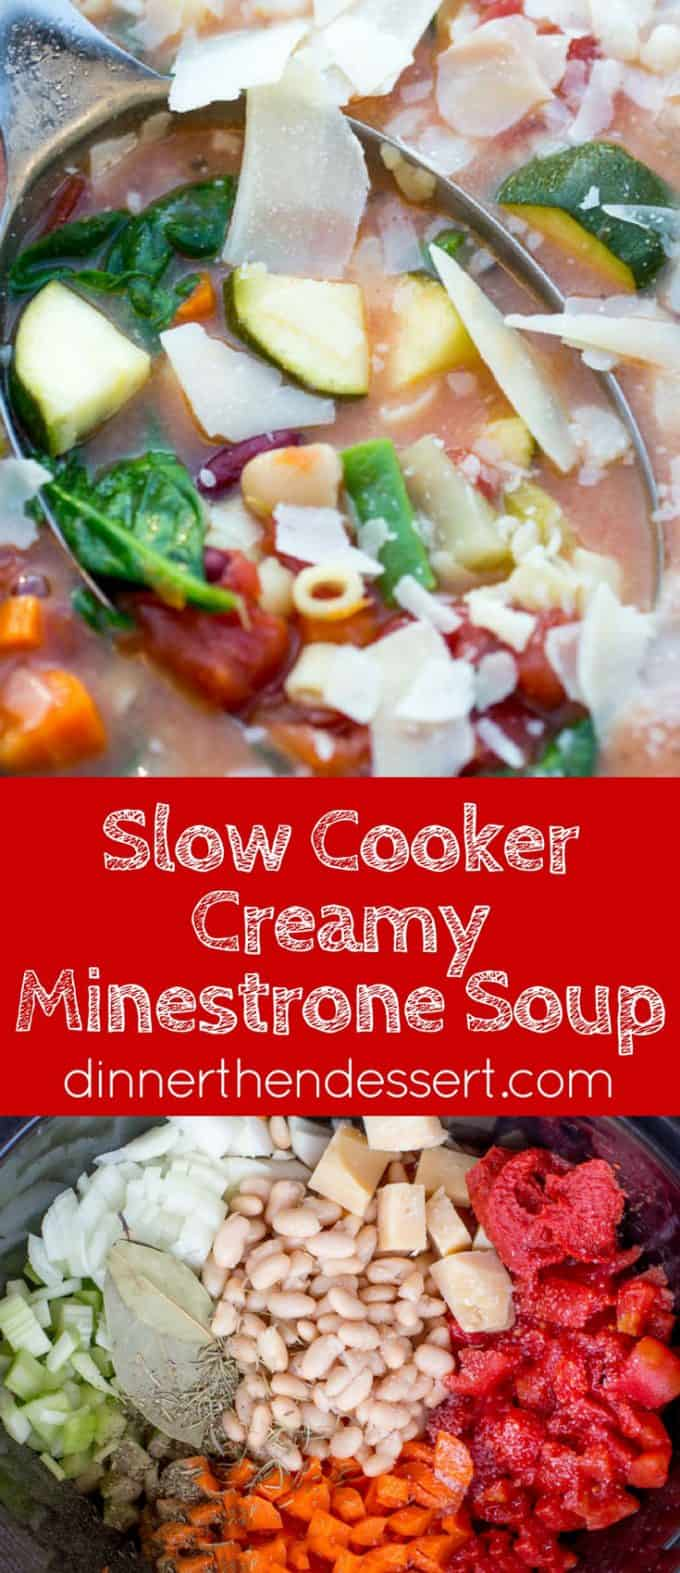 Slow Cooker Creamy Minestrone Soup is the perfect warm you up meal you'll enjoy through the winter months that is healthy and hearty and made with no cream!